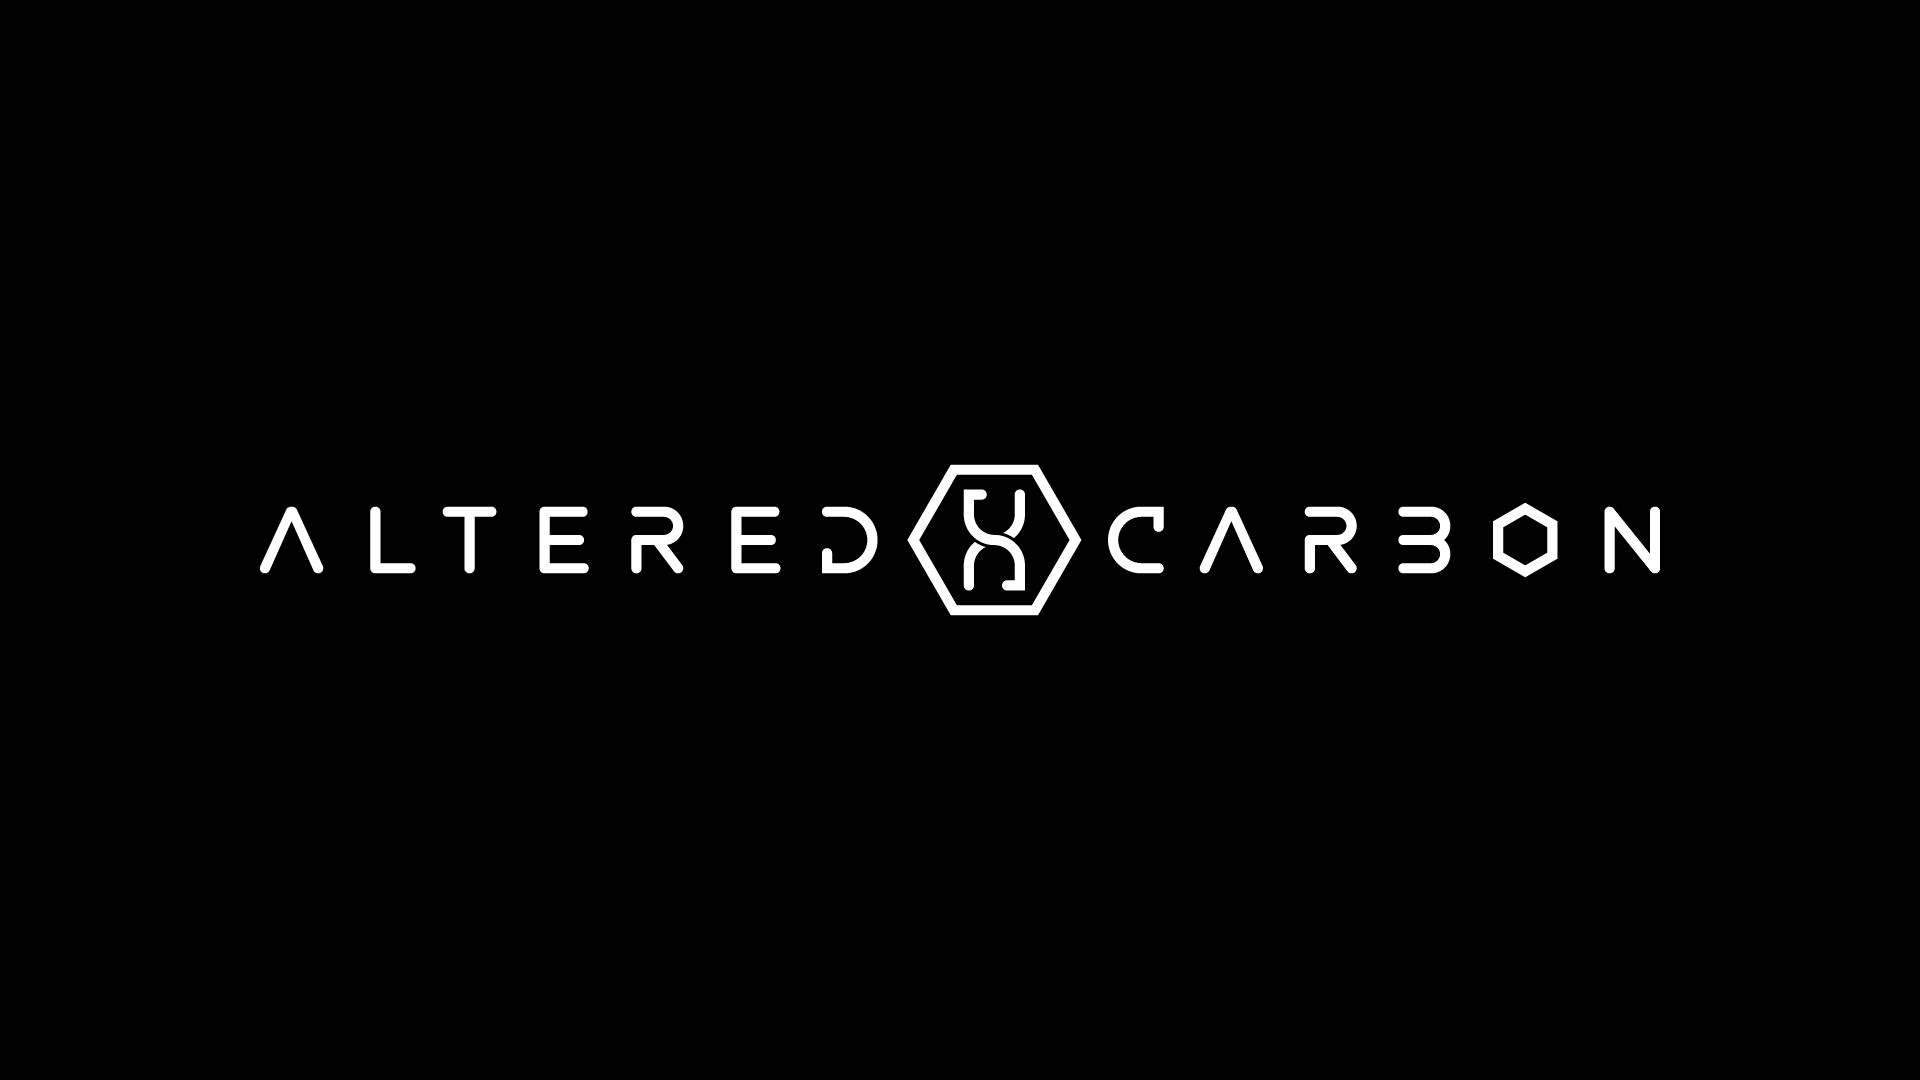 4 HD Altered Carbon Wallpapers